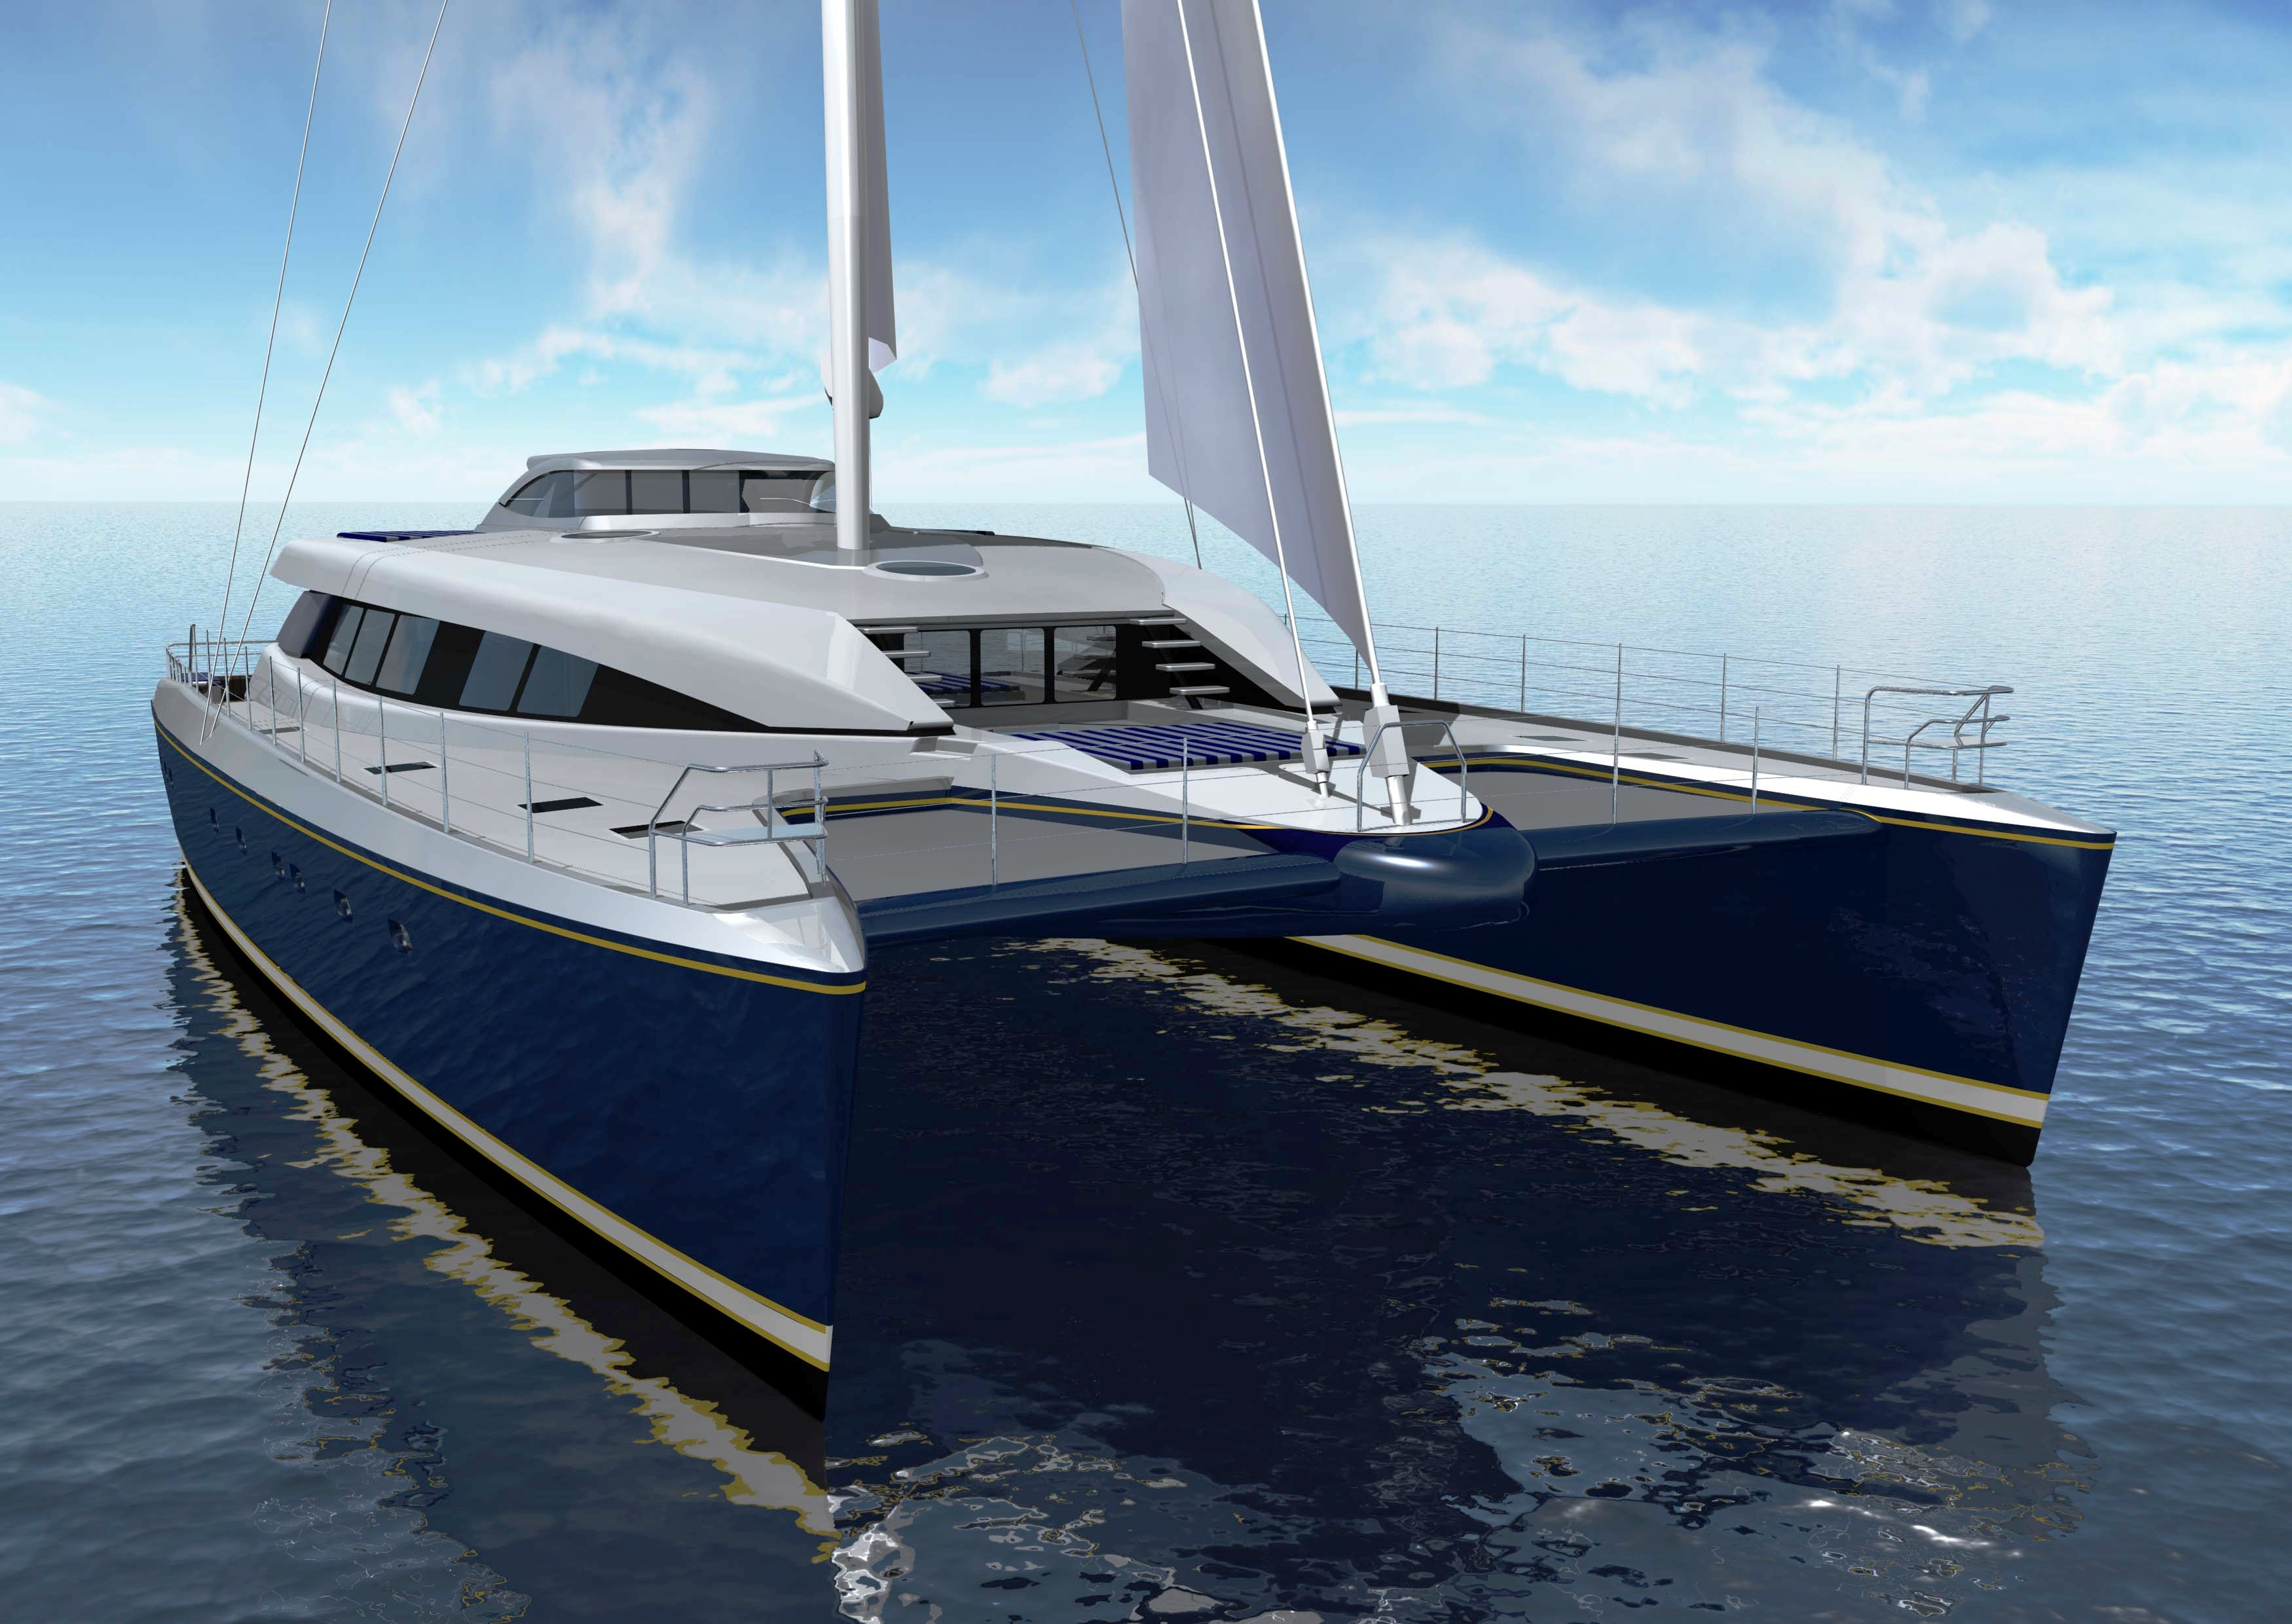 Exterior of the 30m Super Catamaran Quintessential 5 (AKA Q5) by Yachting Developments